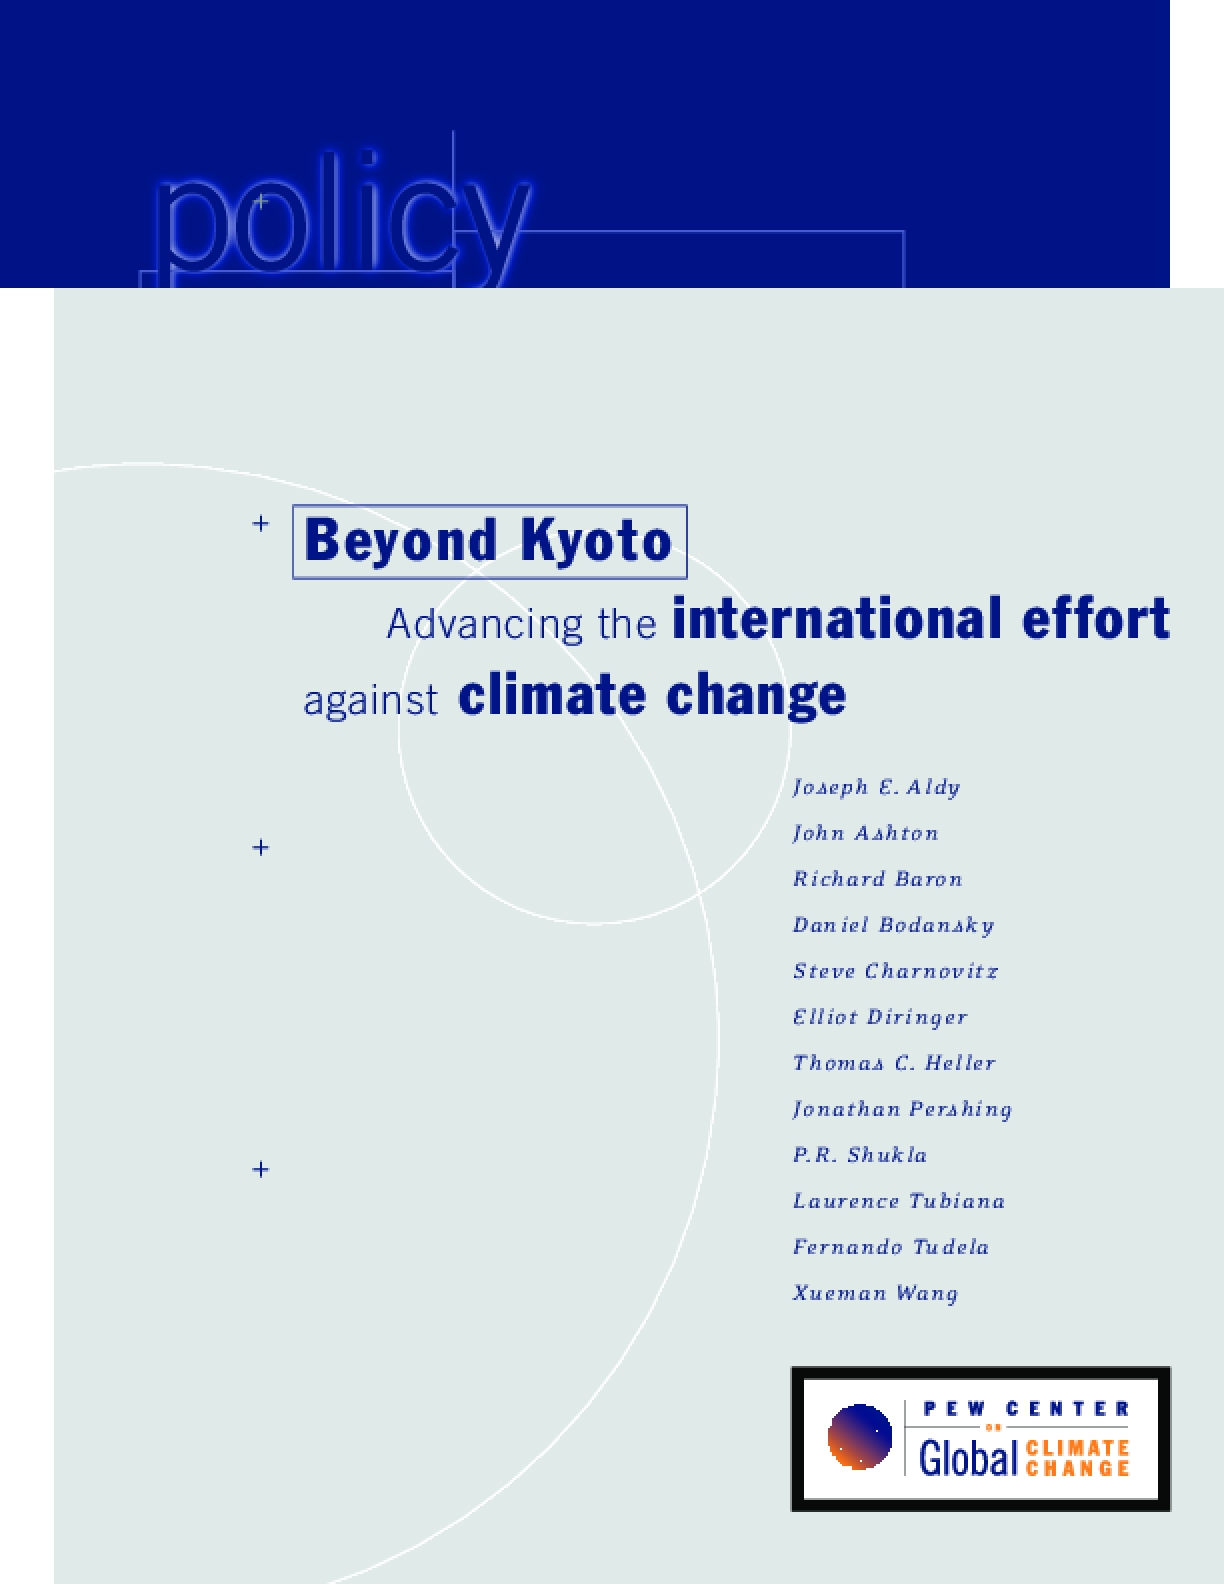 Beyond Kyoto: Advancing the International Effort Against Climate Change